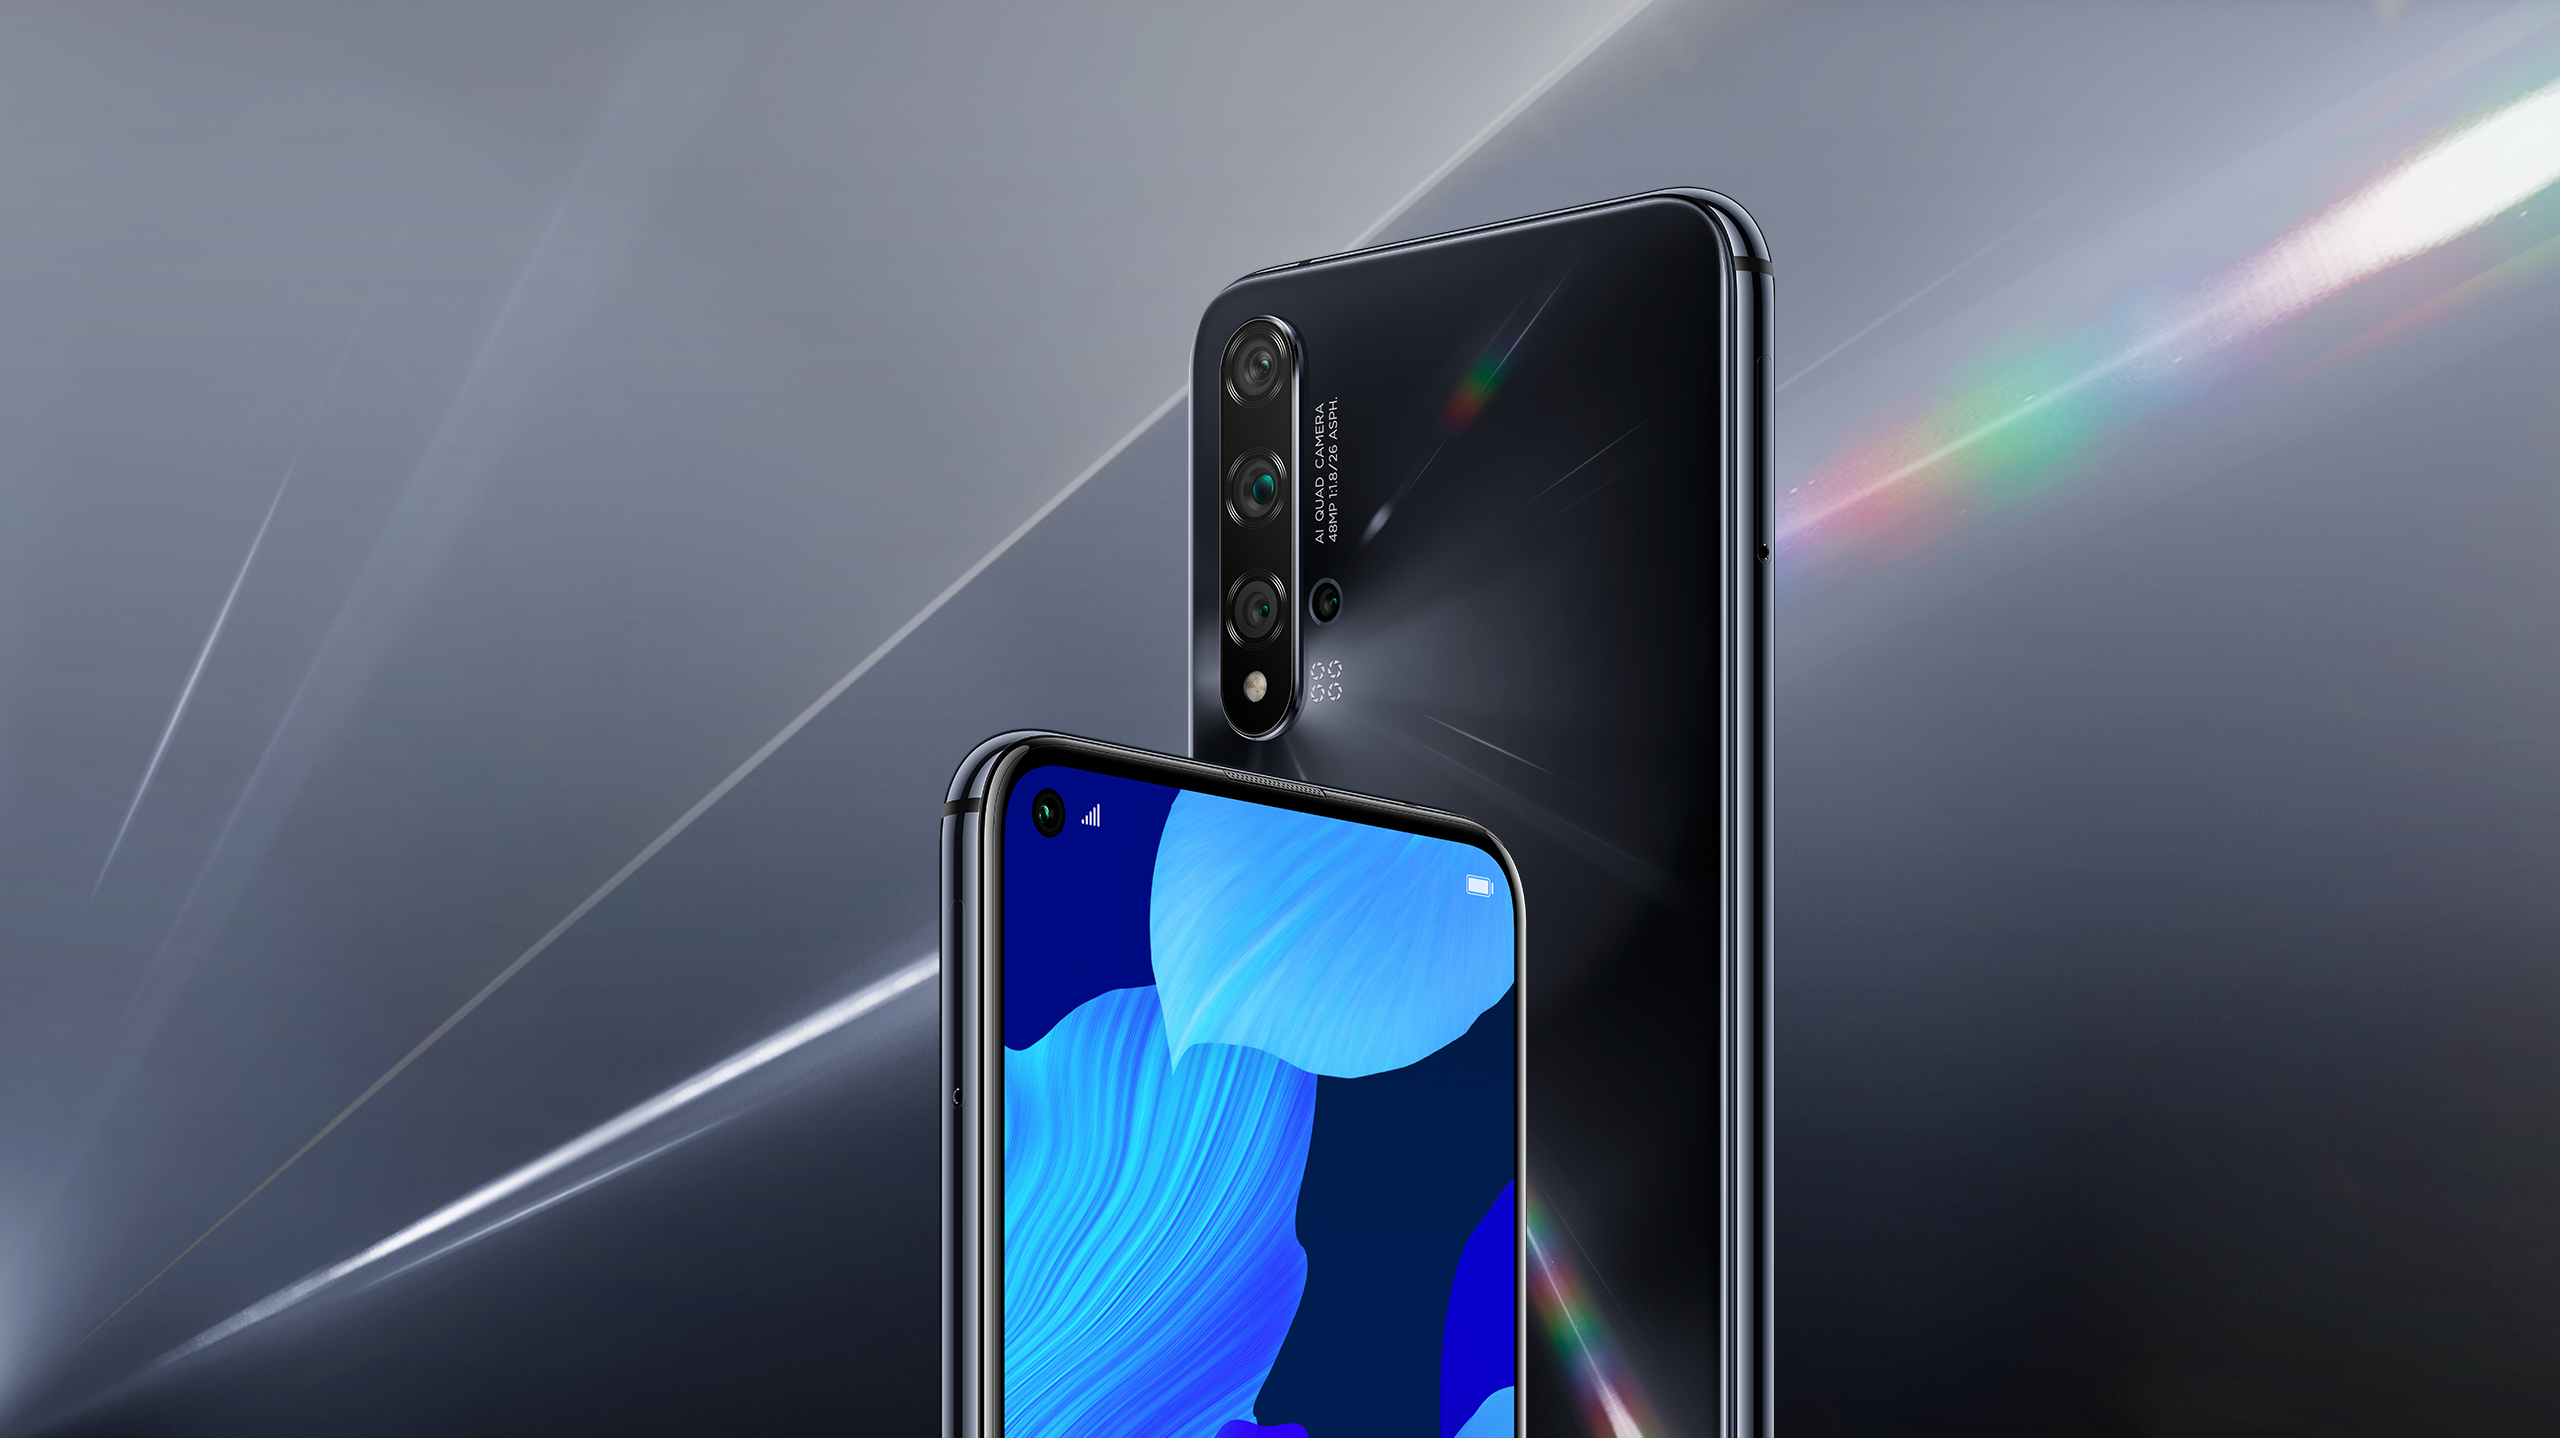 HUAWEI nova 5T color black